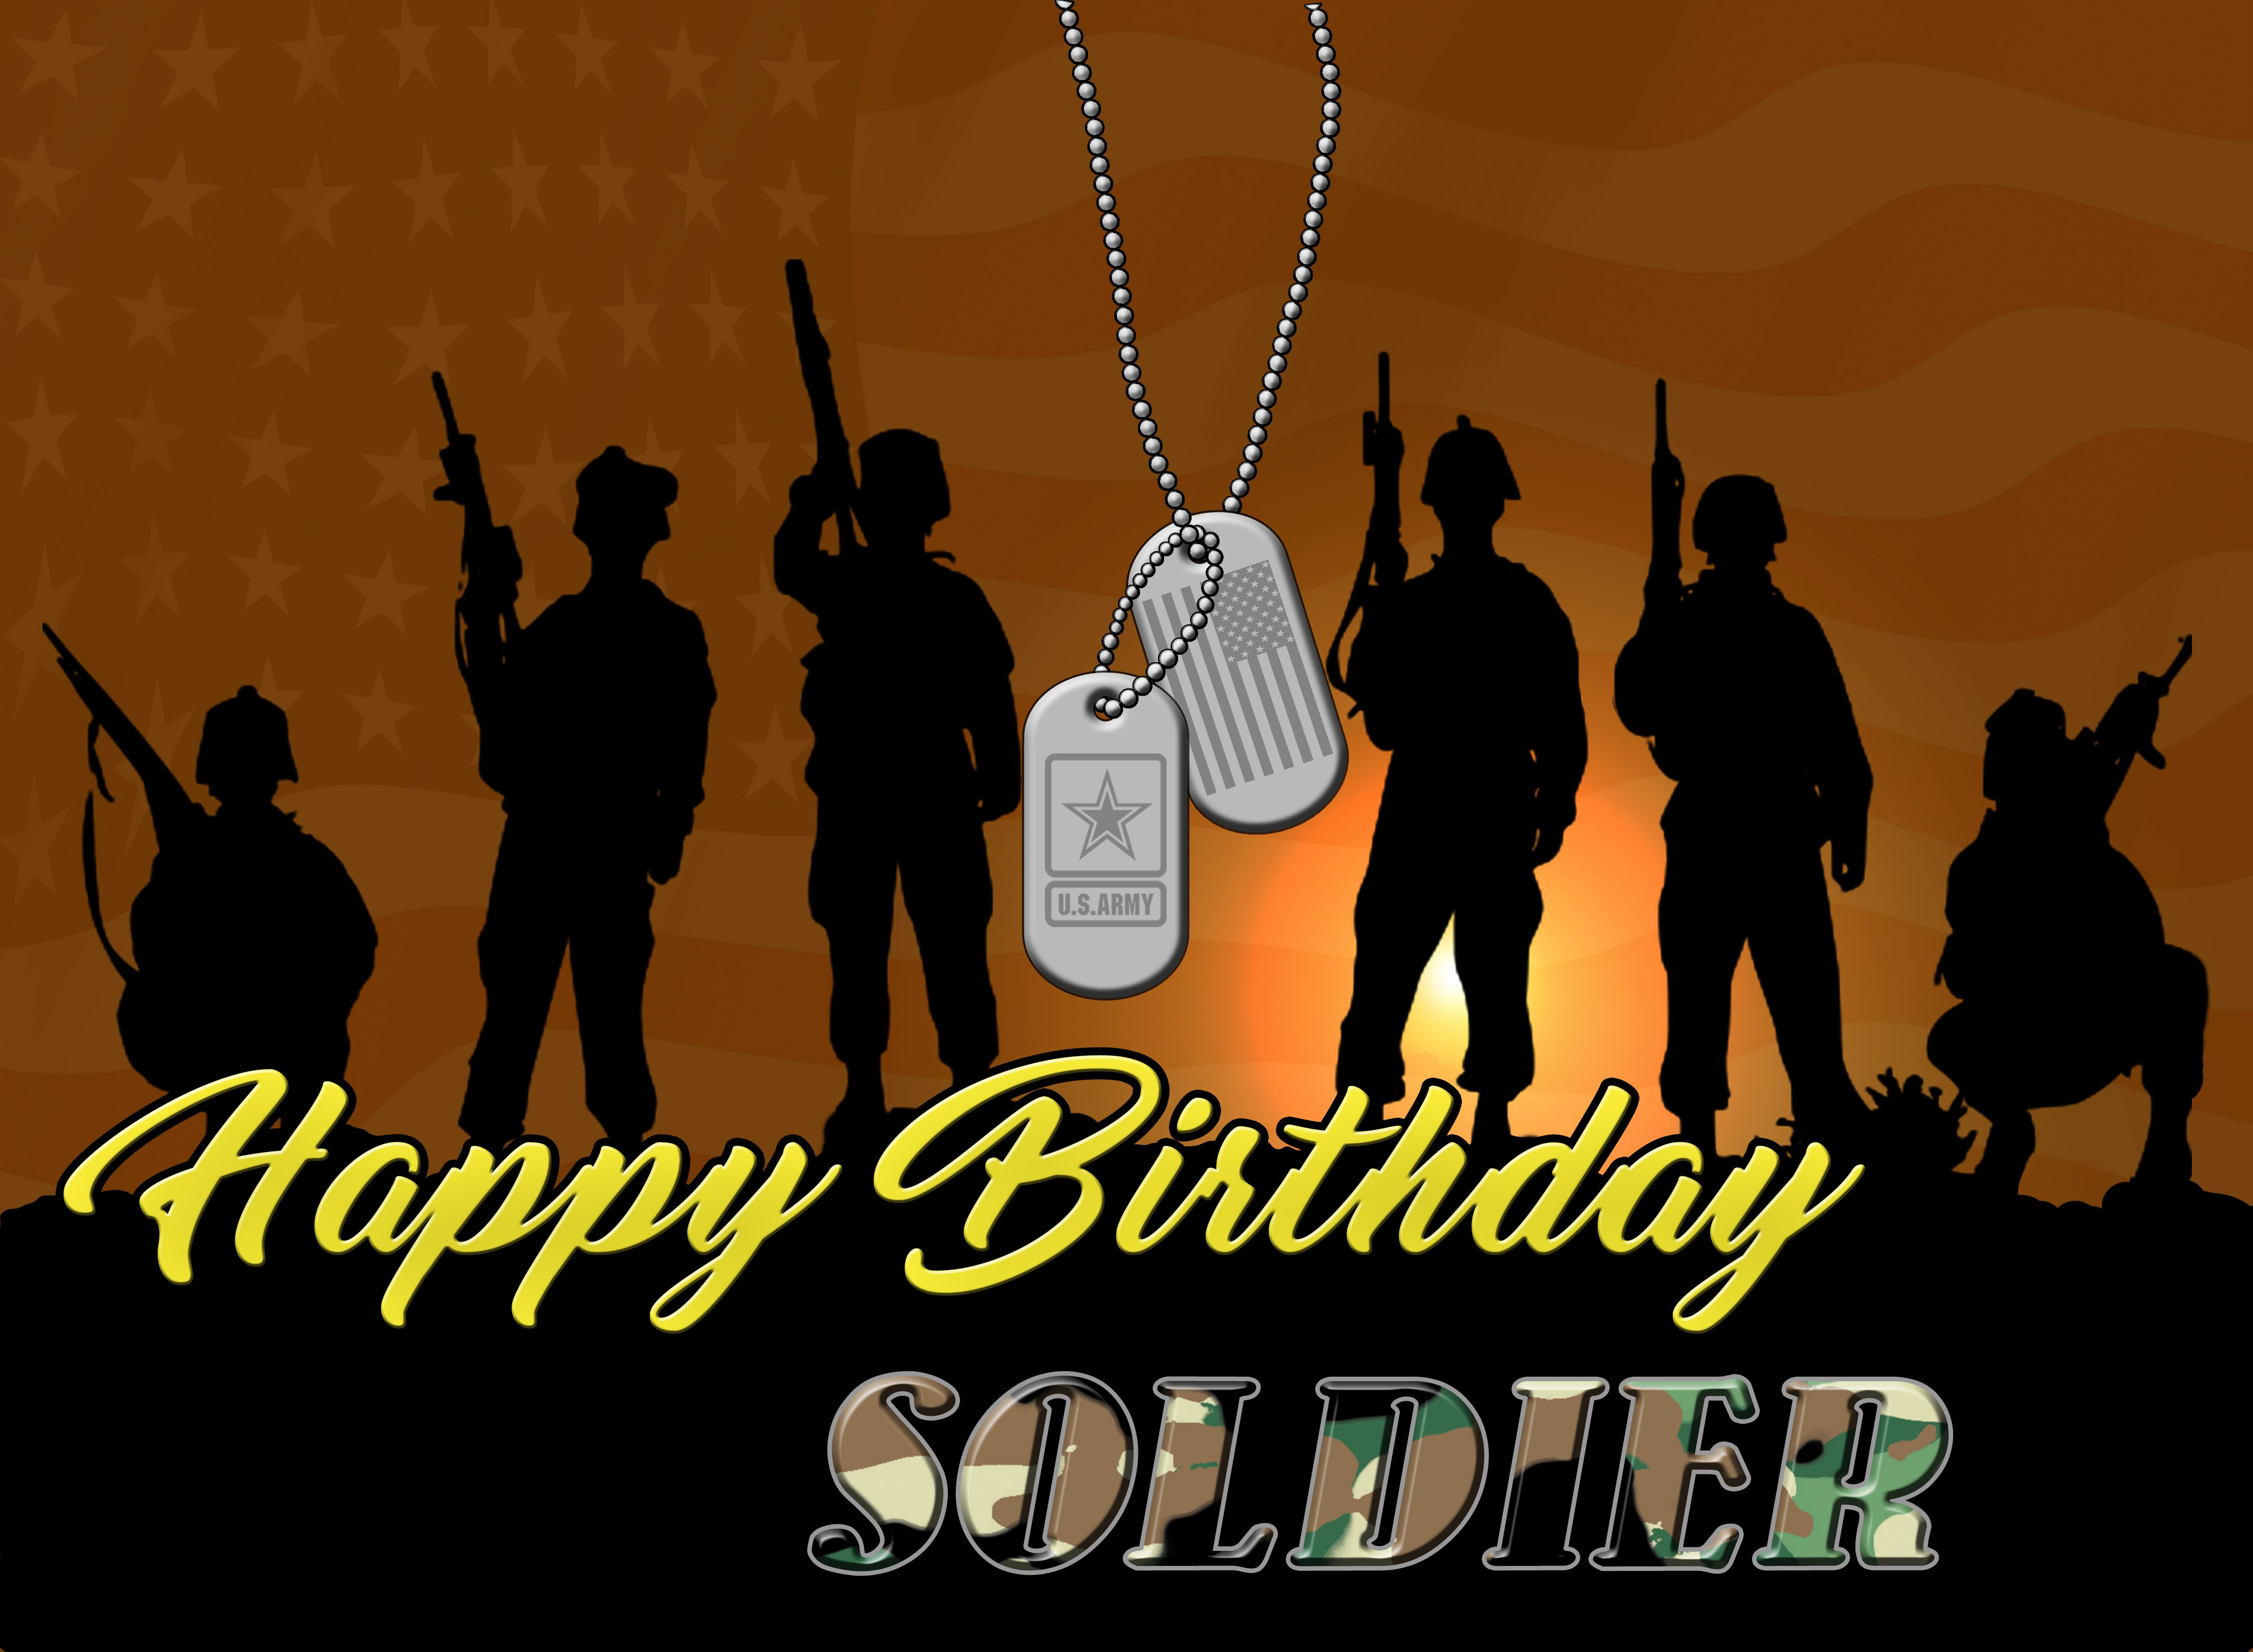 United States Army, US ARMY, Happy Birthday, Soldier, Post Card HD ...